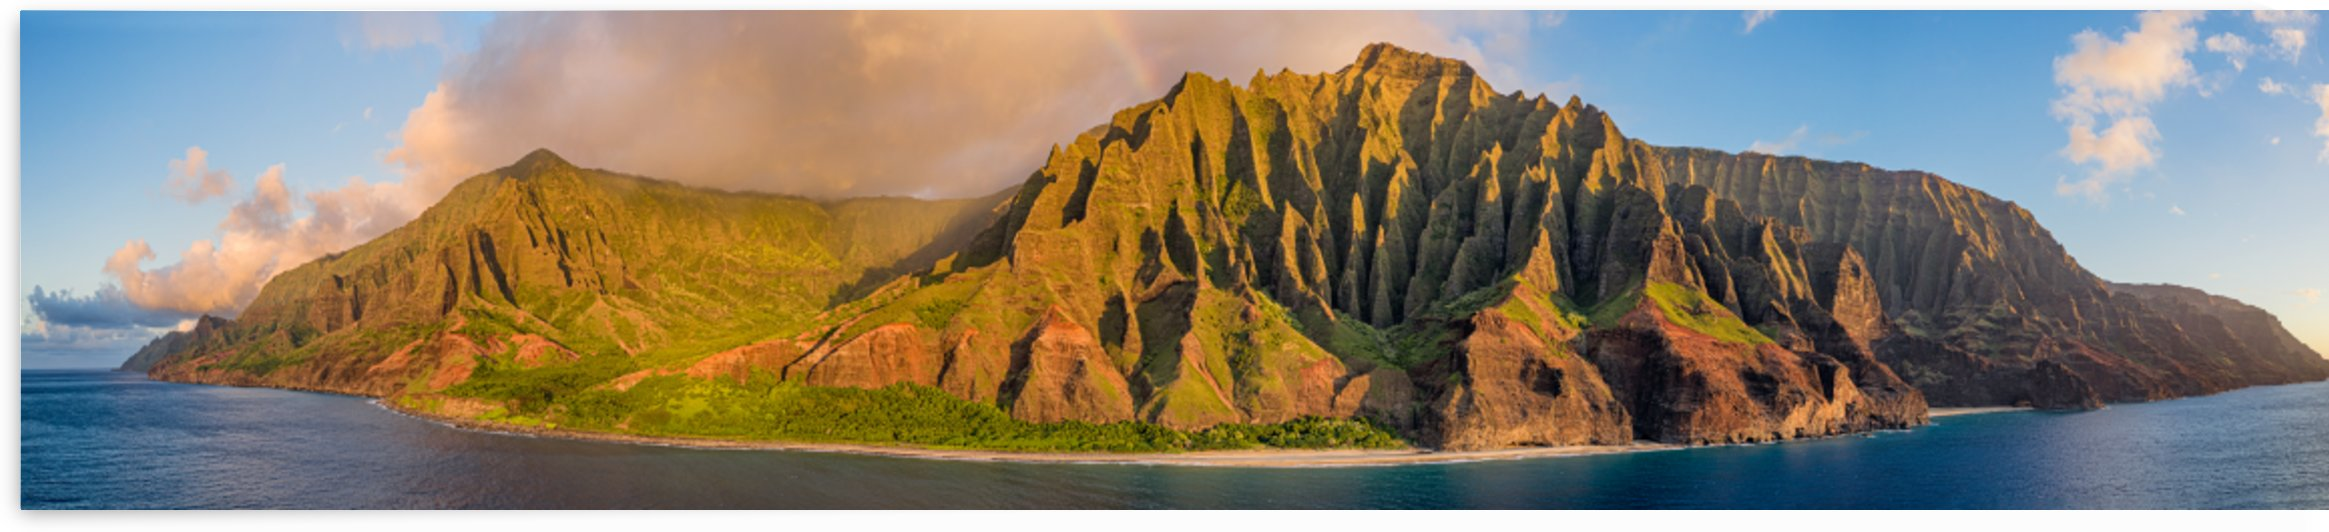 Kalalau Panorama from Ocean by Dave Tonnes